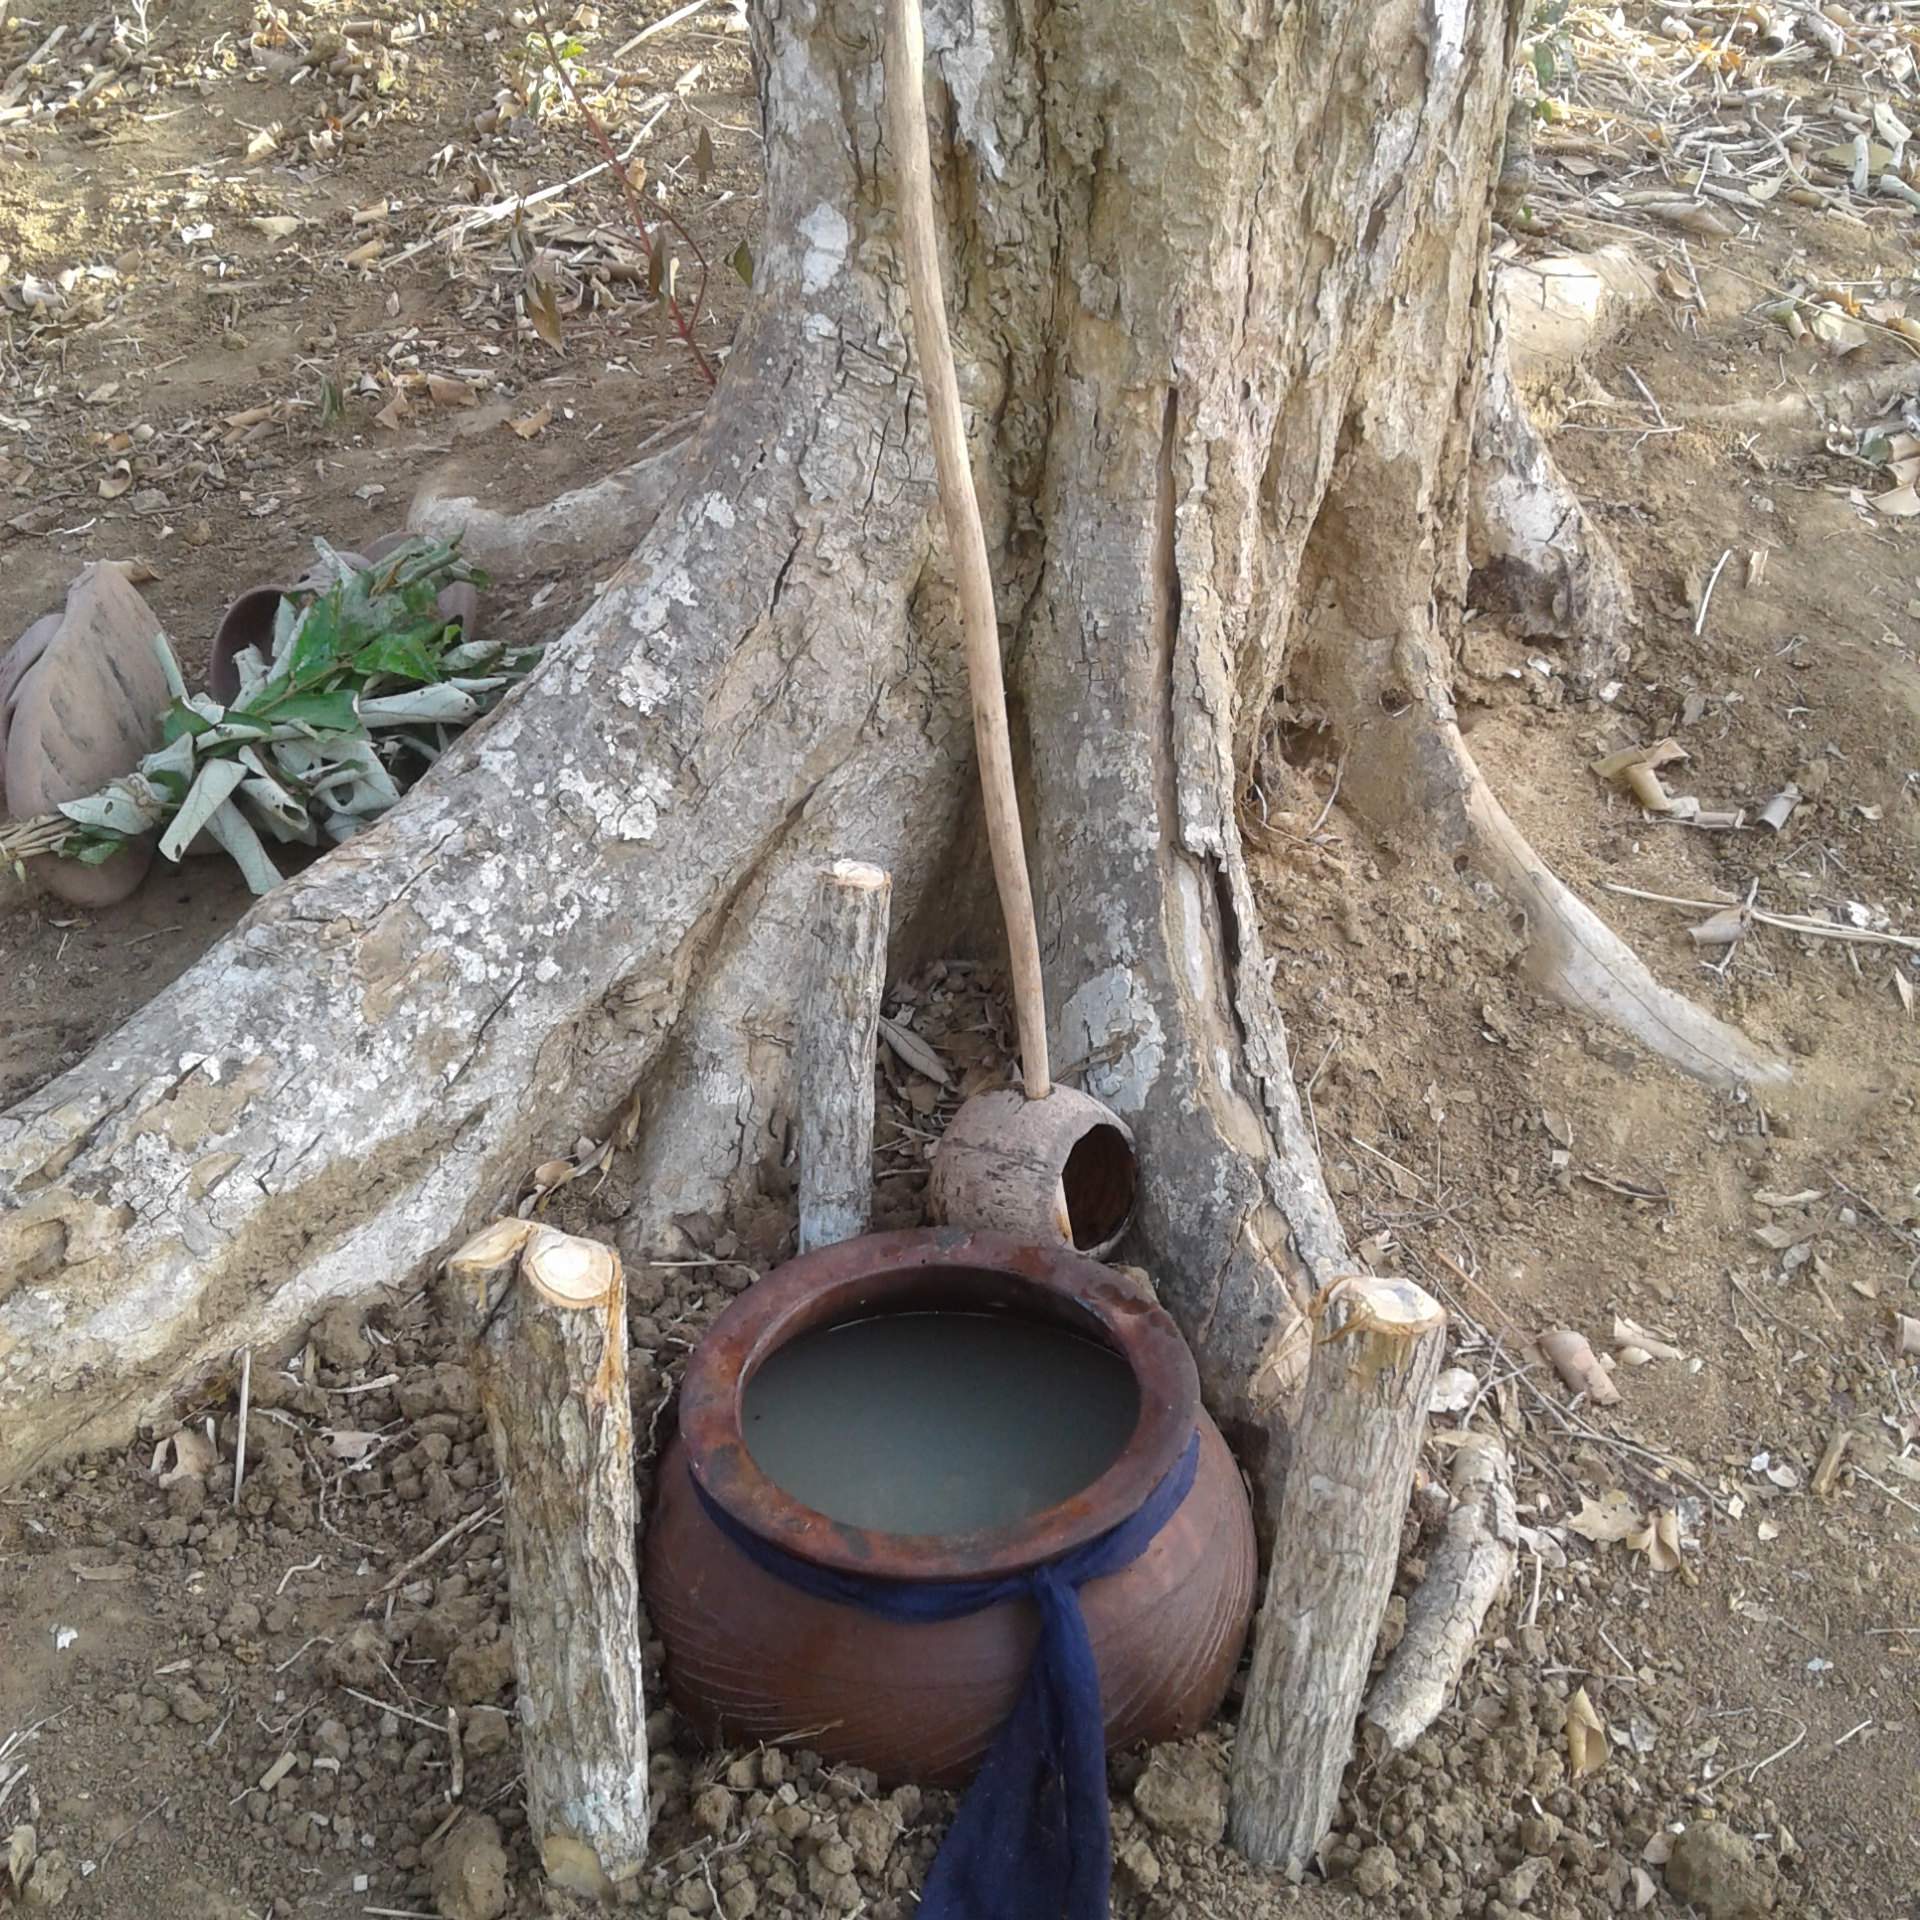 Ritual pot and ladle mijikenda kenya coast